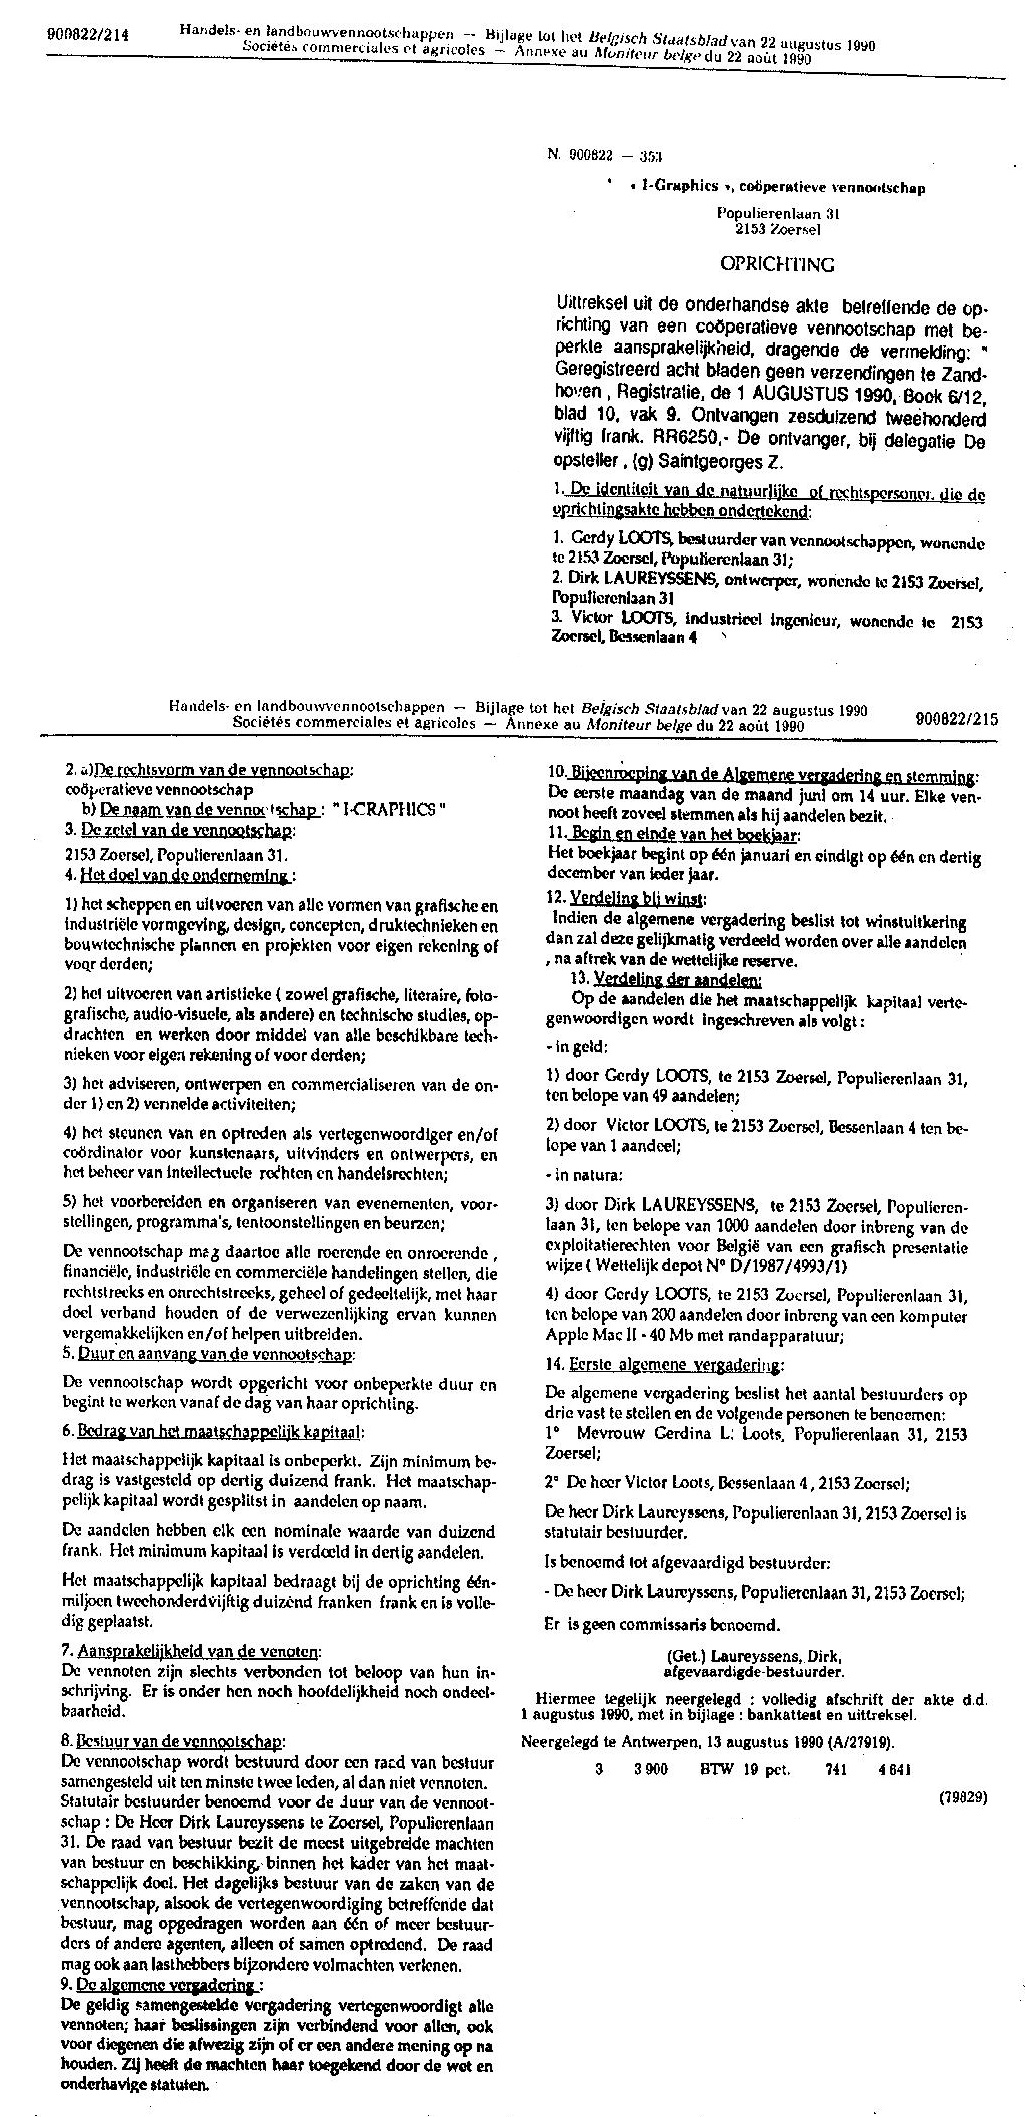 1990-08-01 statutes of I-Graphics